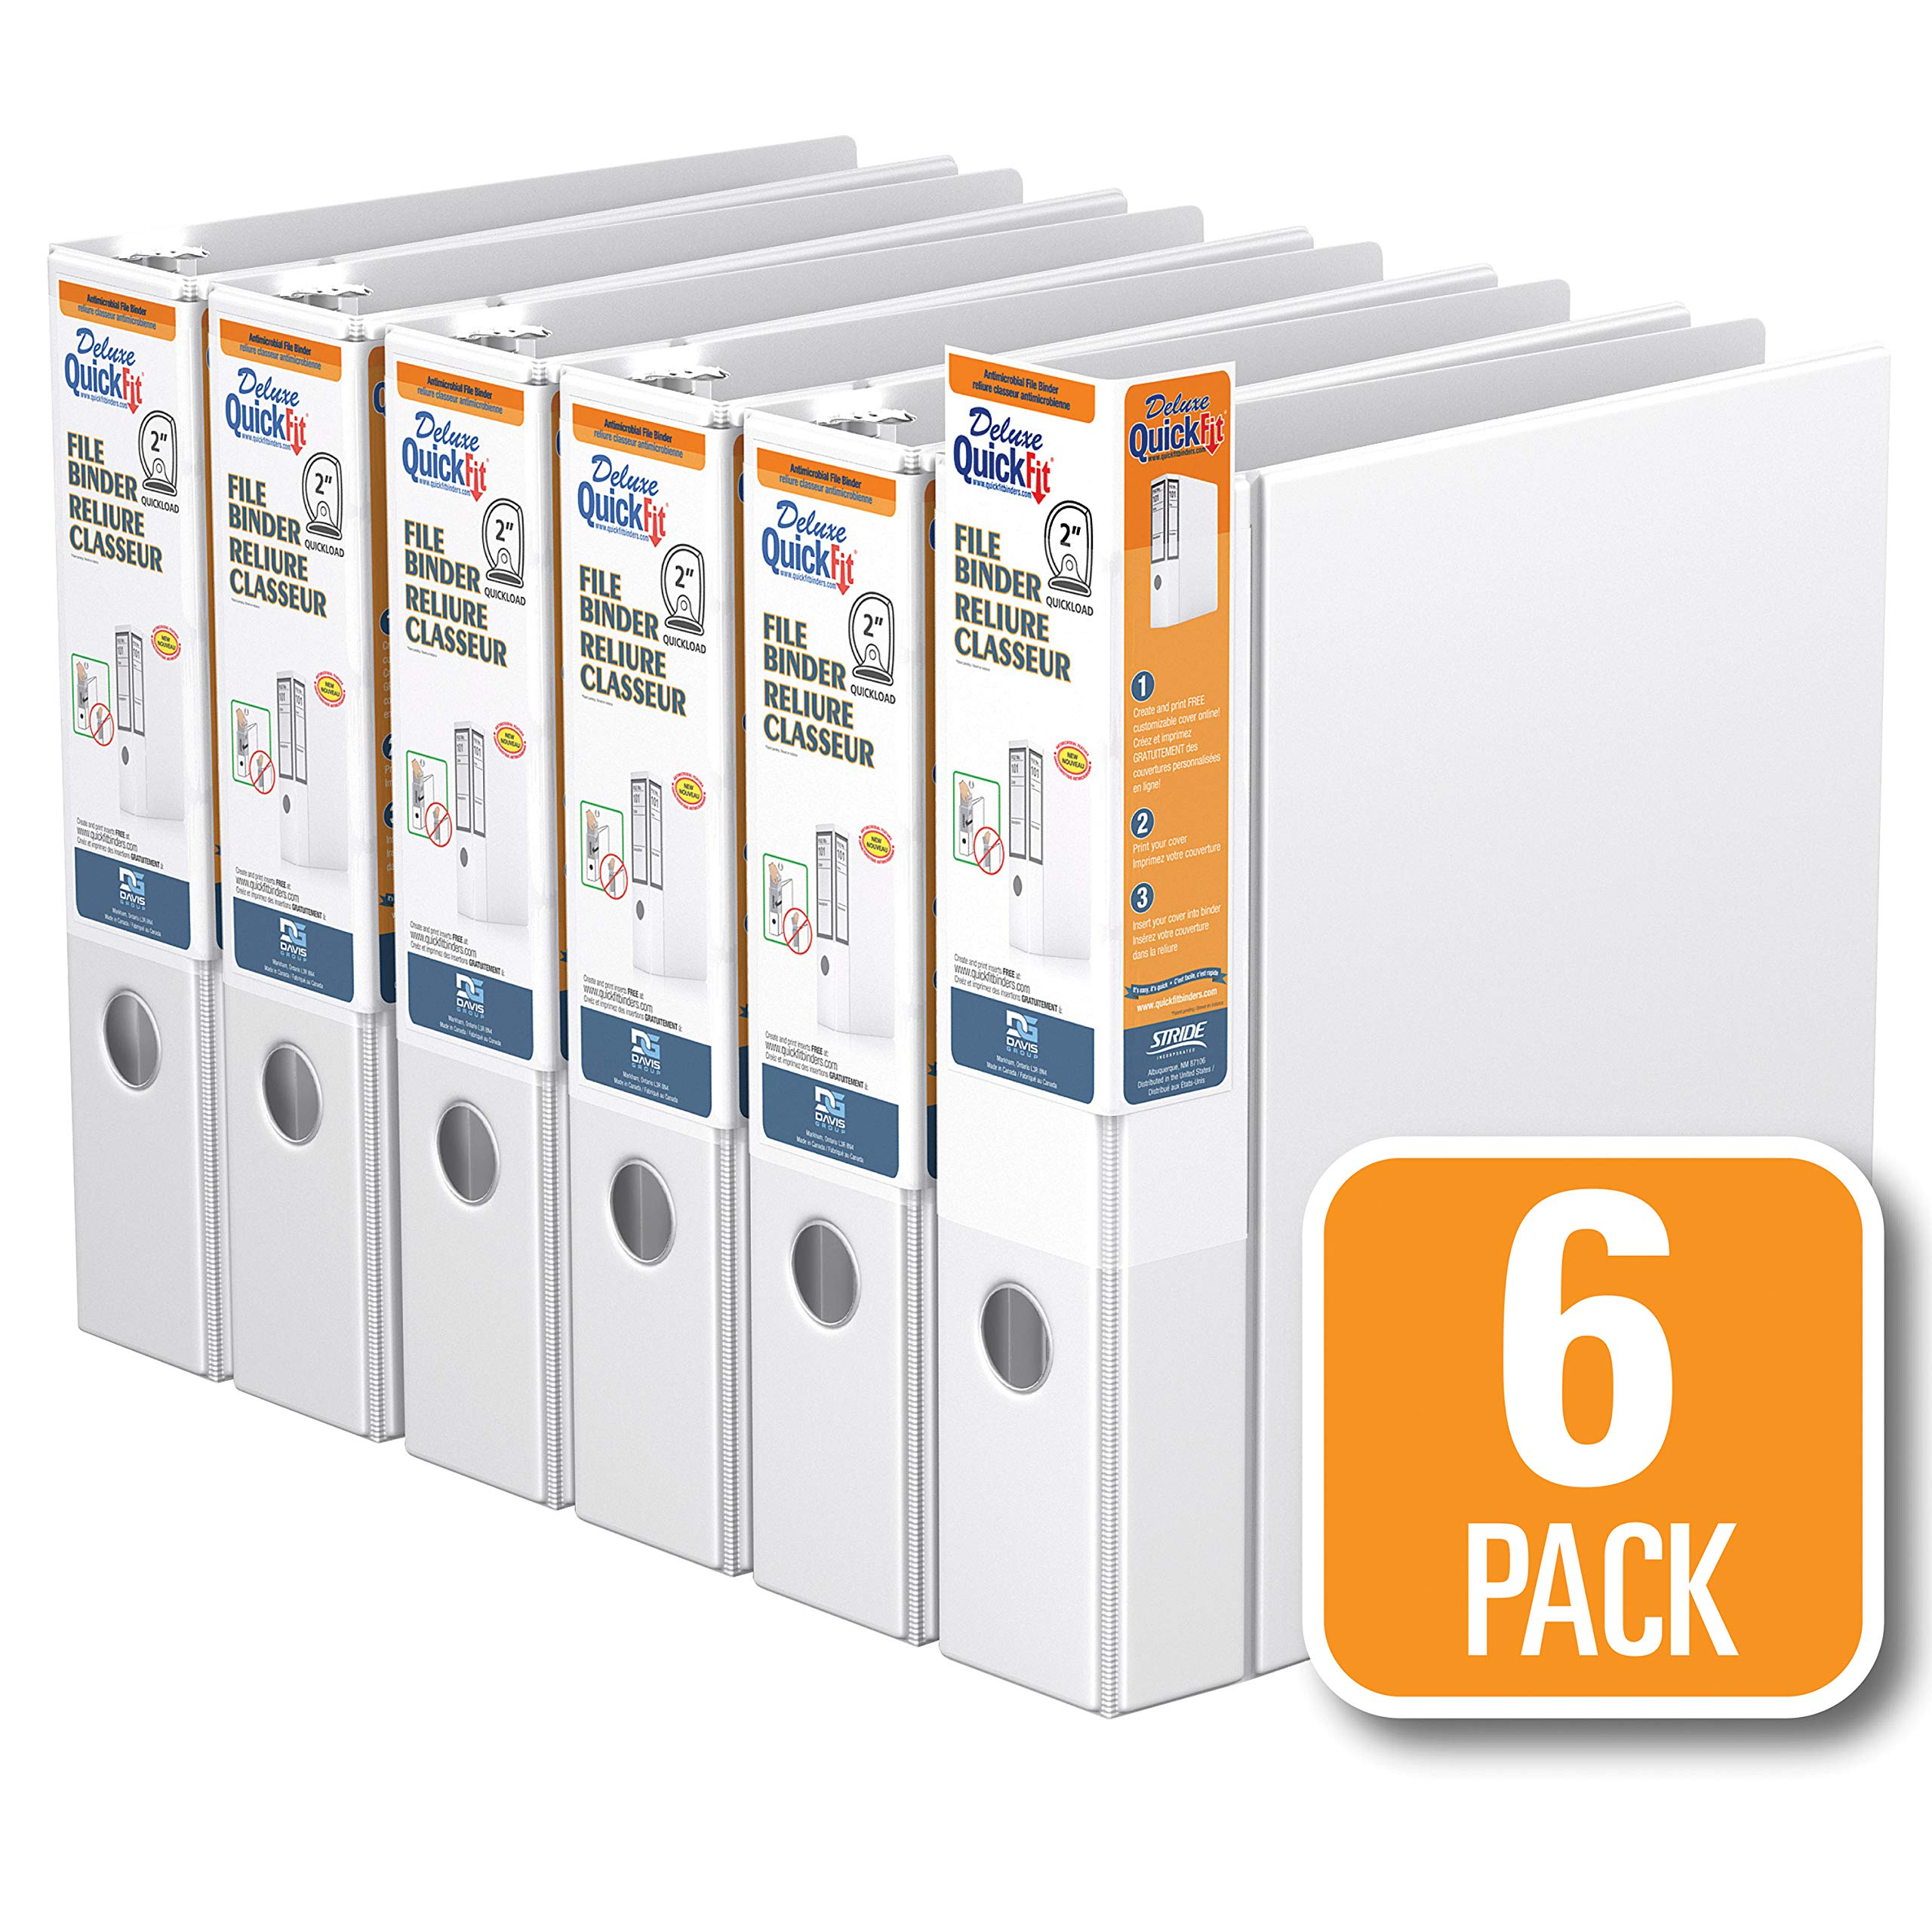 QuickFit Heavy Duty File Binder, 2 Inch, D Ring, White, 6 Pack (28030-06) by QuickFit